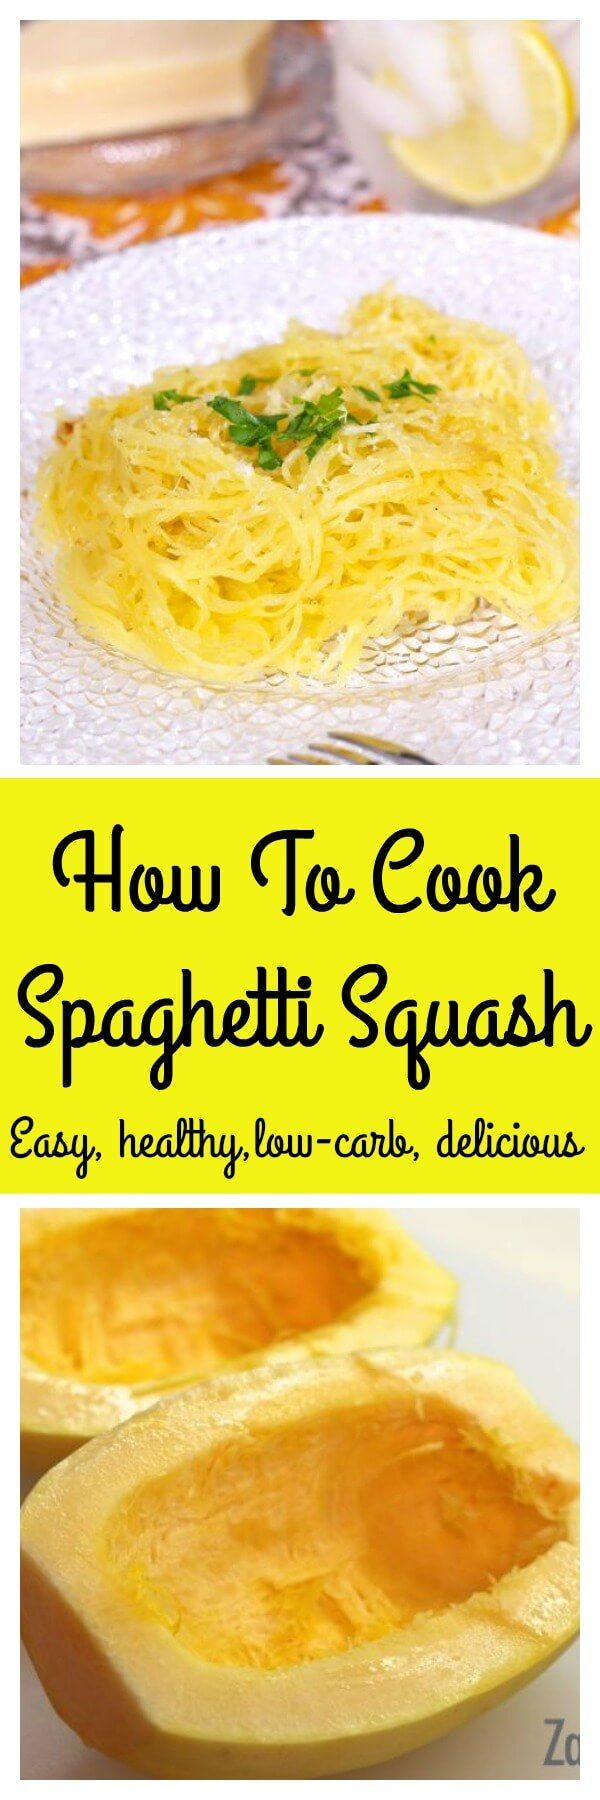 How To Cook Spaghetti Squash, an easy step-by-step recipe with photos and a video. Spaghetti Squash is a flavorful low carb alternative to pasta.   zagleft.com